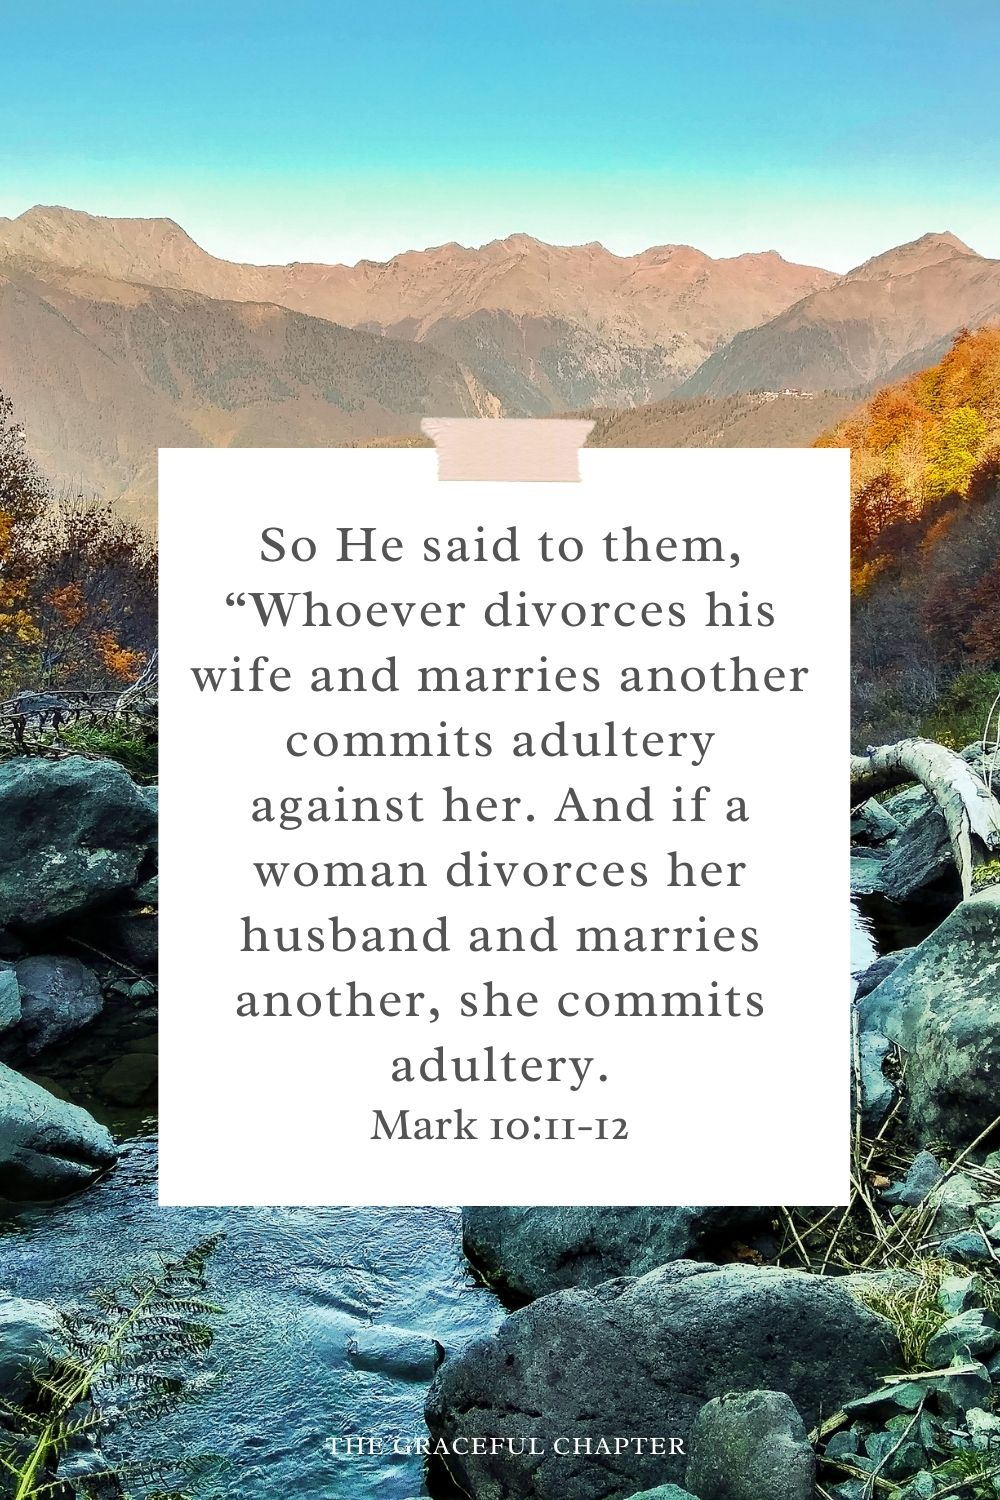 """So He said to them, """"Whoever divorces his wife and marries another commits adultery against her. And if a woman divorces her husband and marries another, she commits adultery. Mark 10:11-12"""